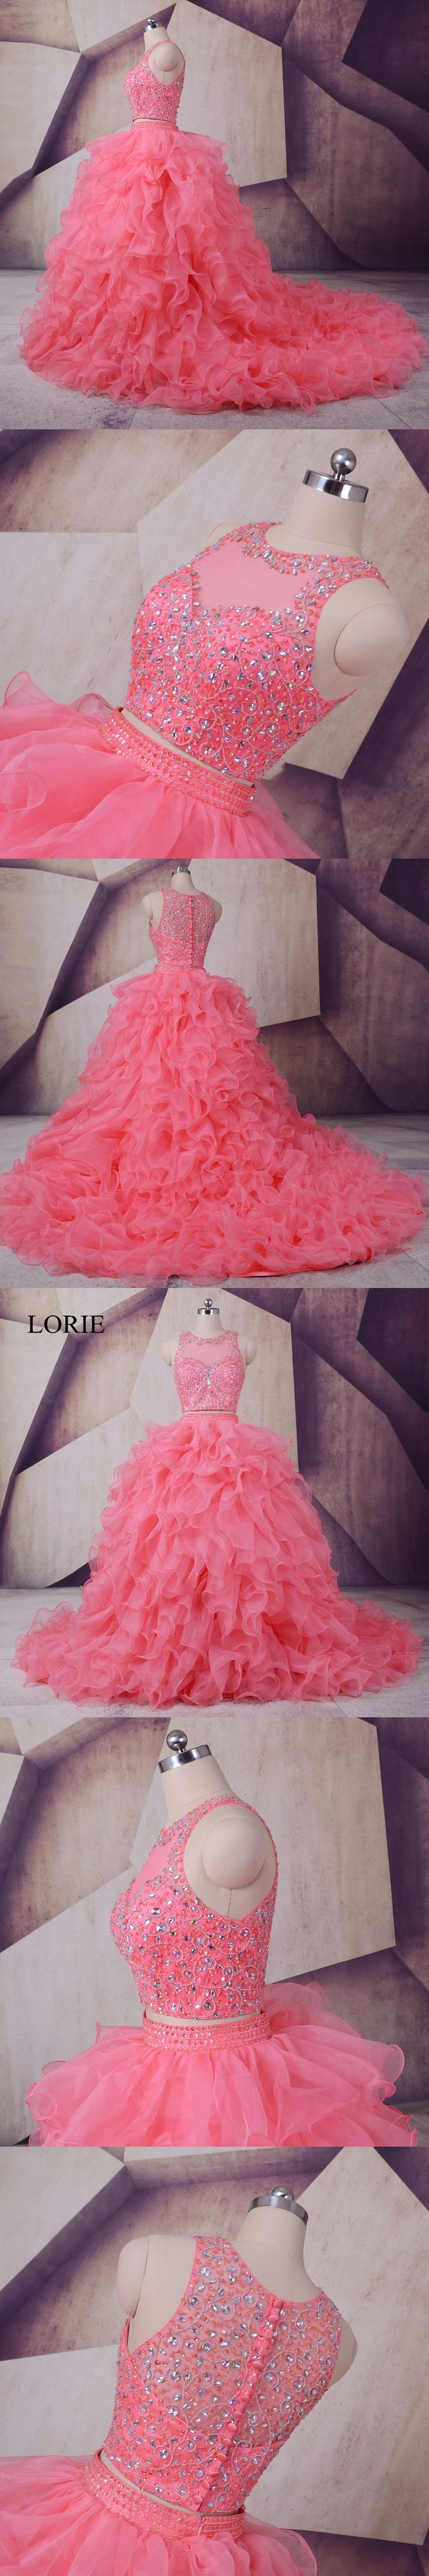 Vestidos De 15 Anos Peach Quinceanera Dresses 2017 LORIE Ruffles Crystals Beaded Luxury Debutante Gowns Girls Sweet 16 Dresses